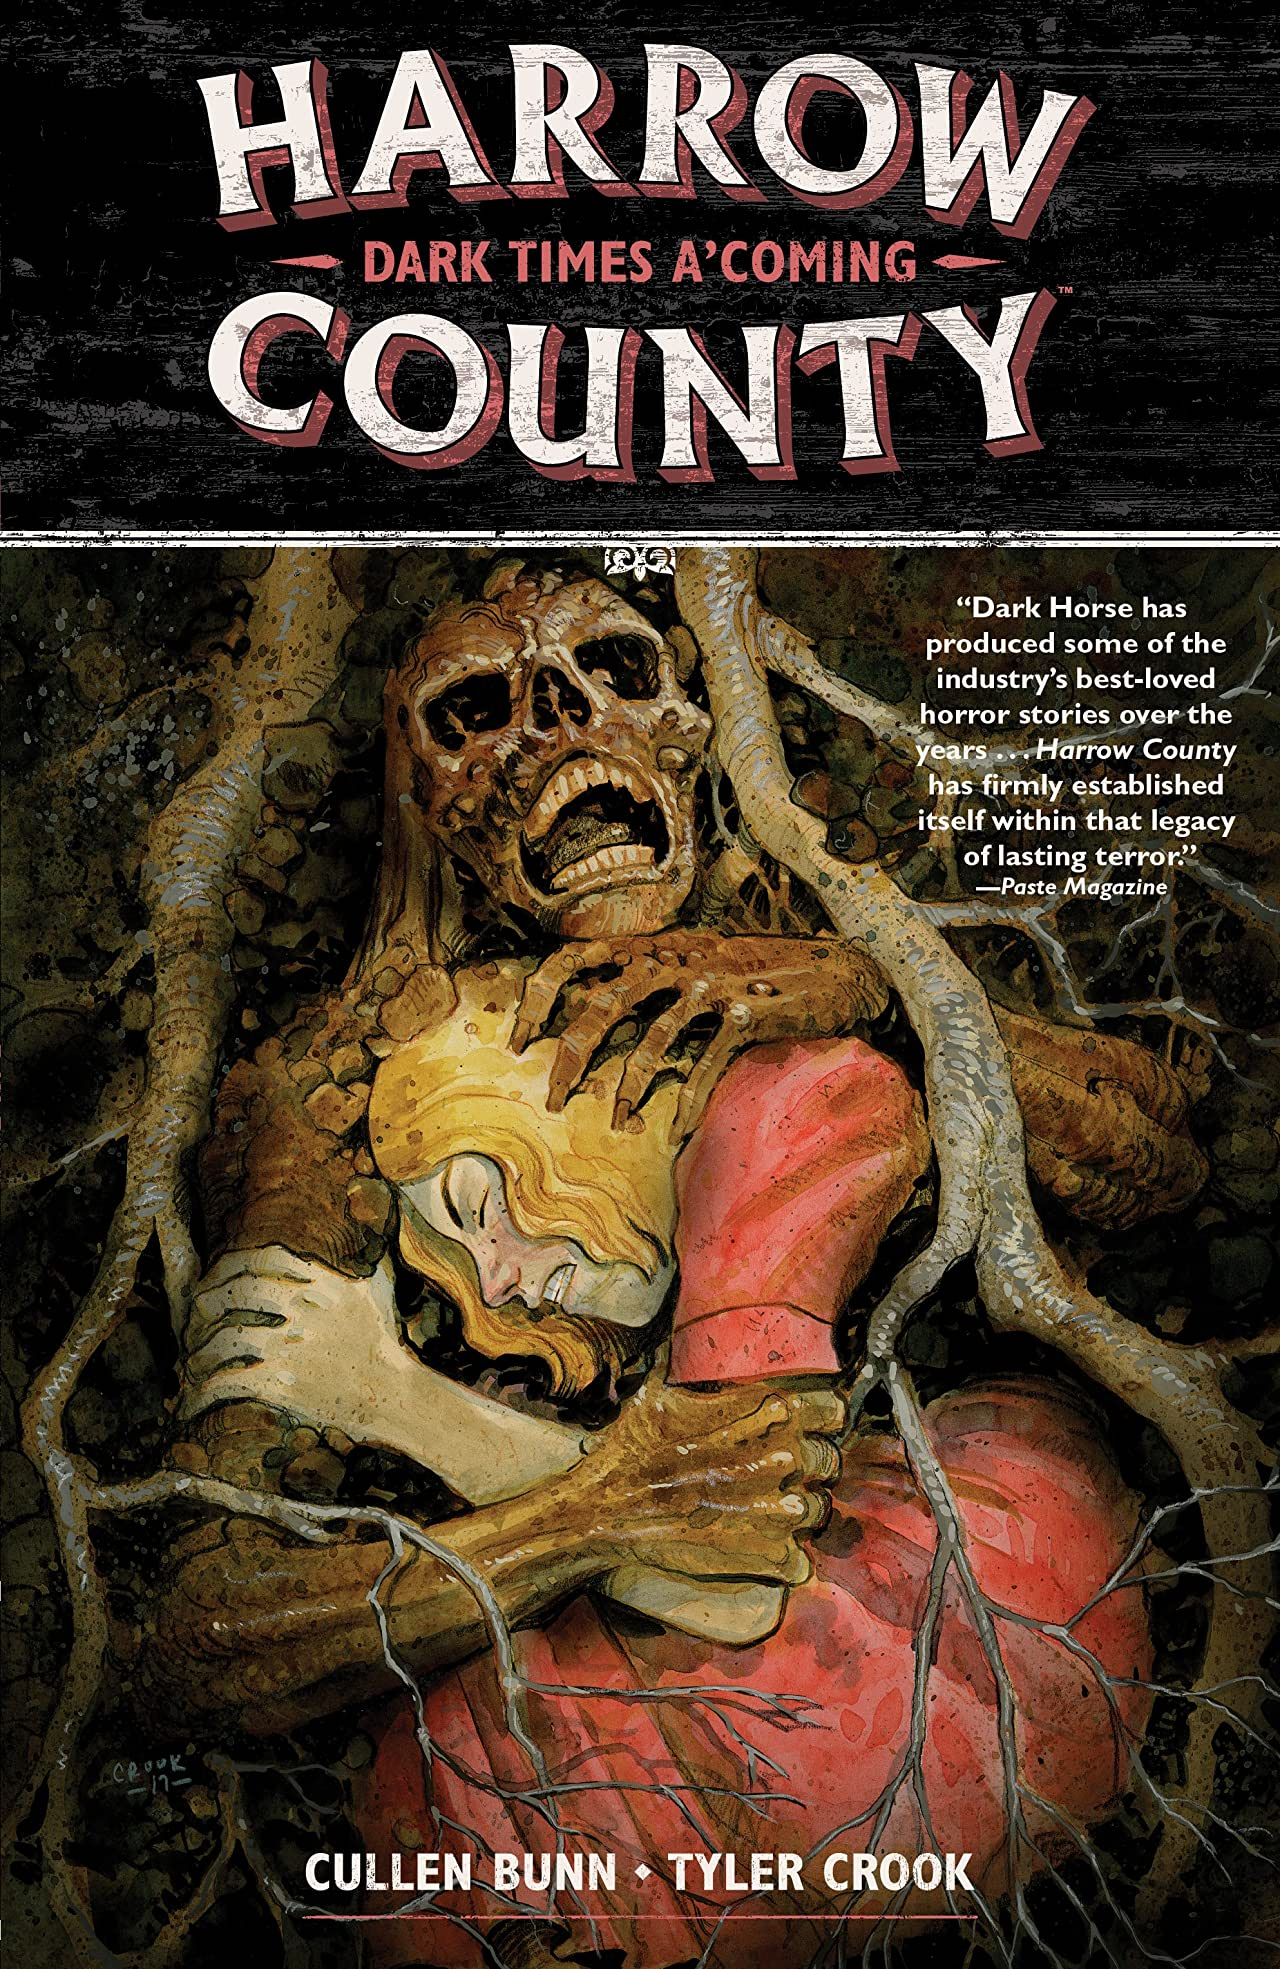 Harrow County Vol. 7: Dark Times A'Coming